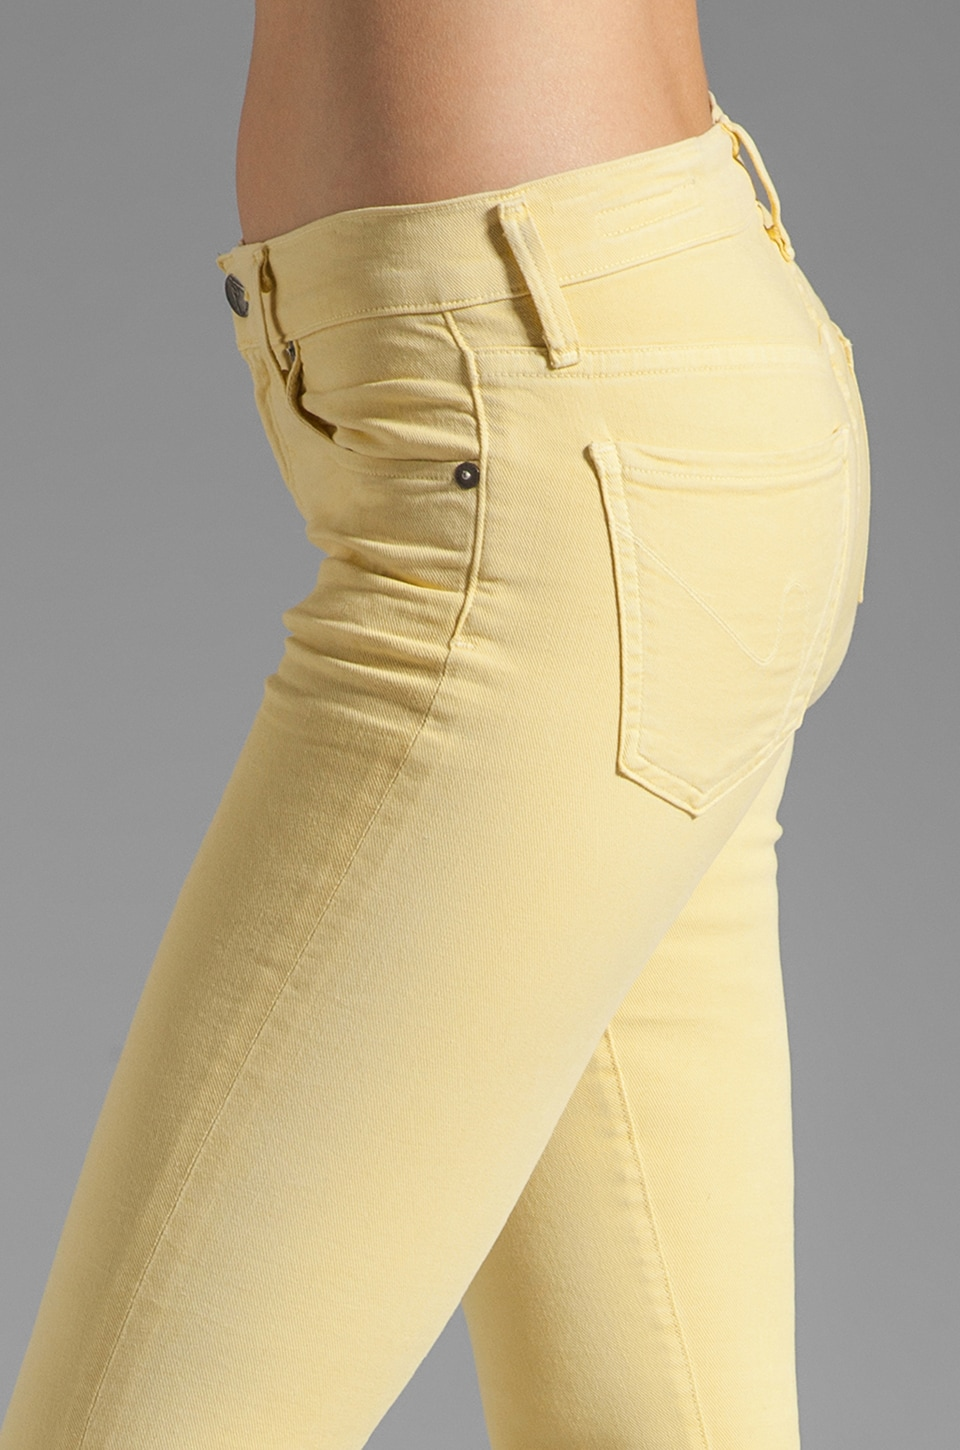 Citizens of Humanity Thompson Twill Ankle Skinny in Chick